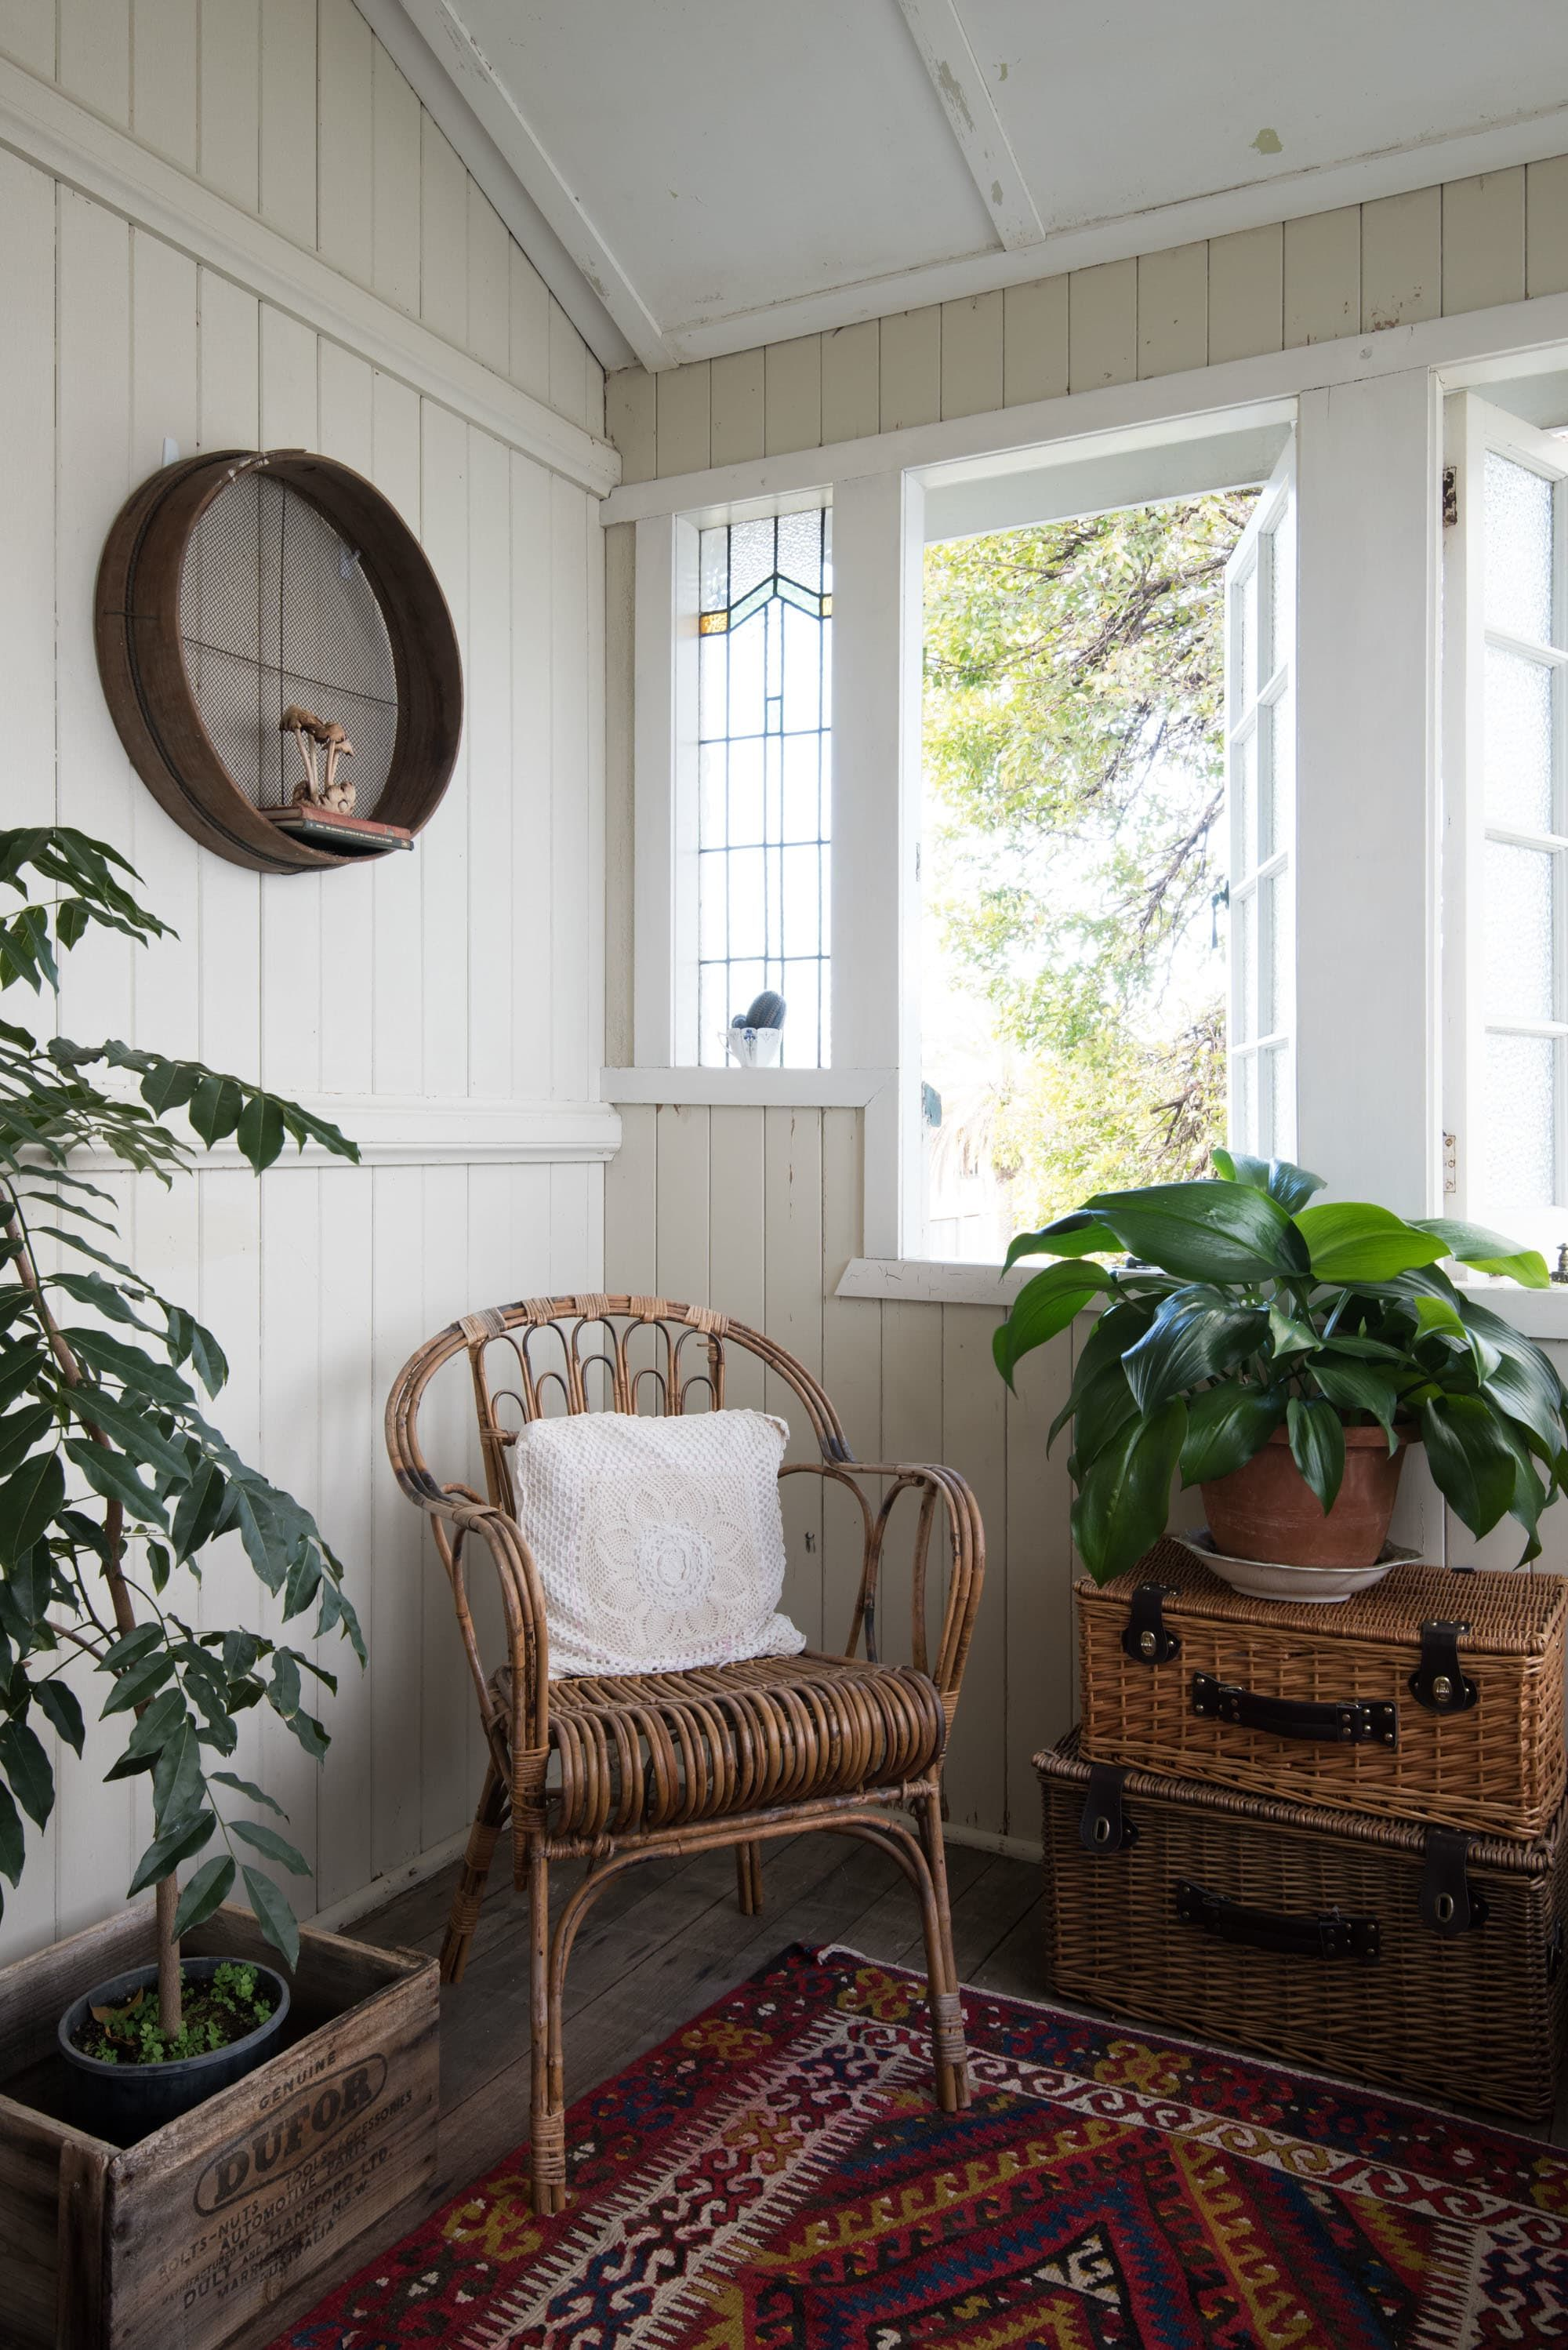 A Warm, Bohemian Country Style Australian Home Small